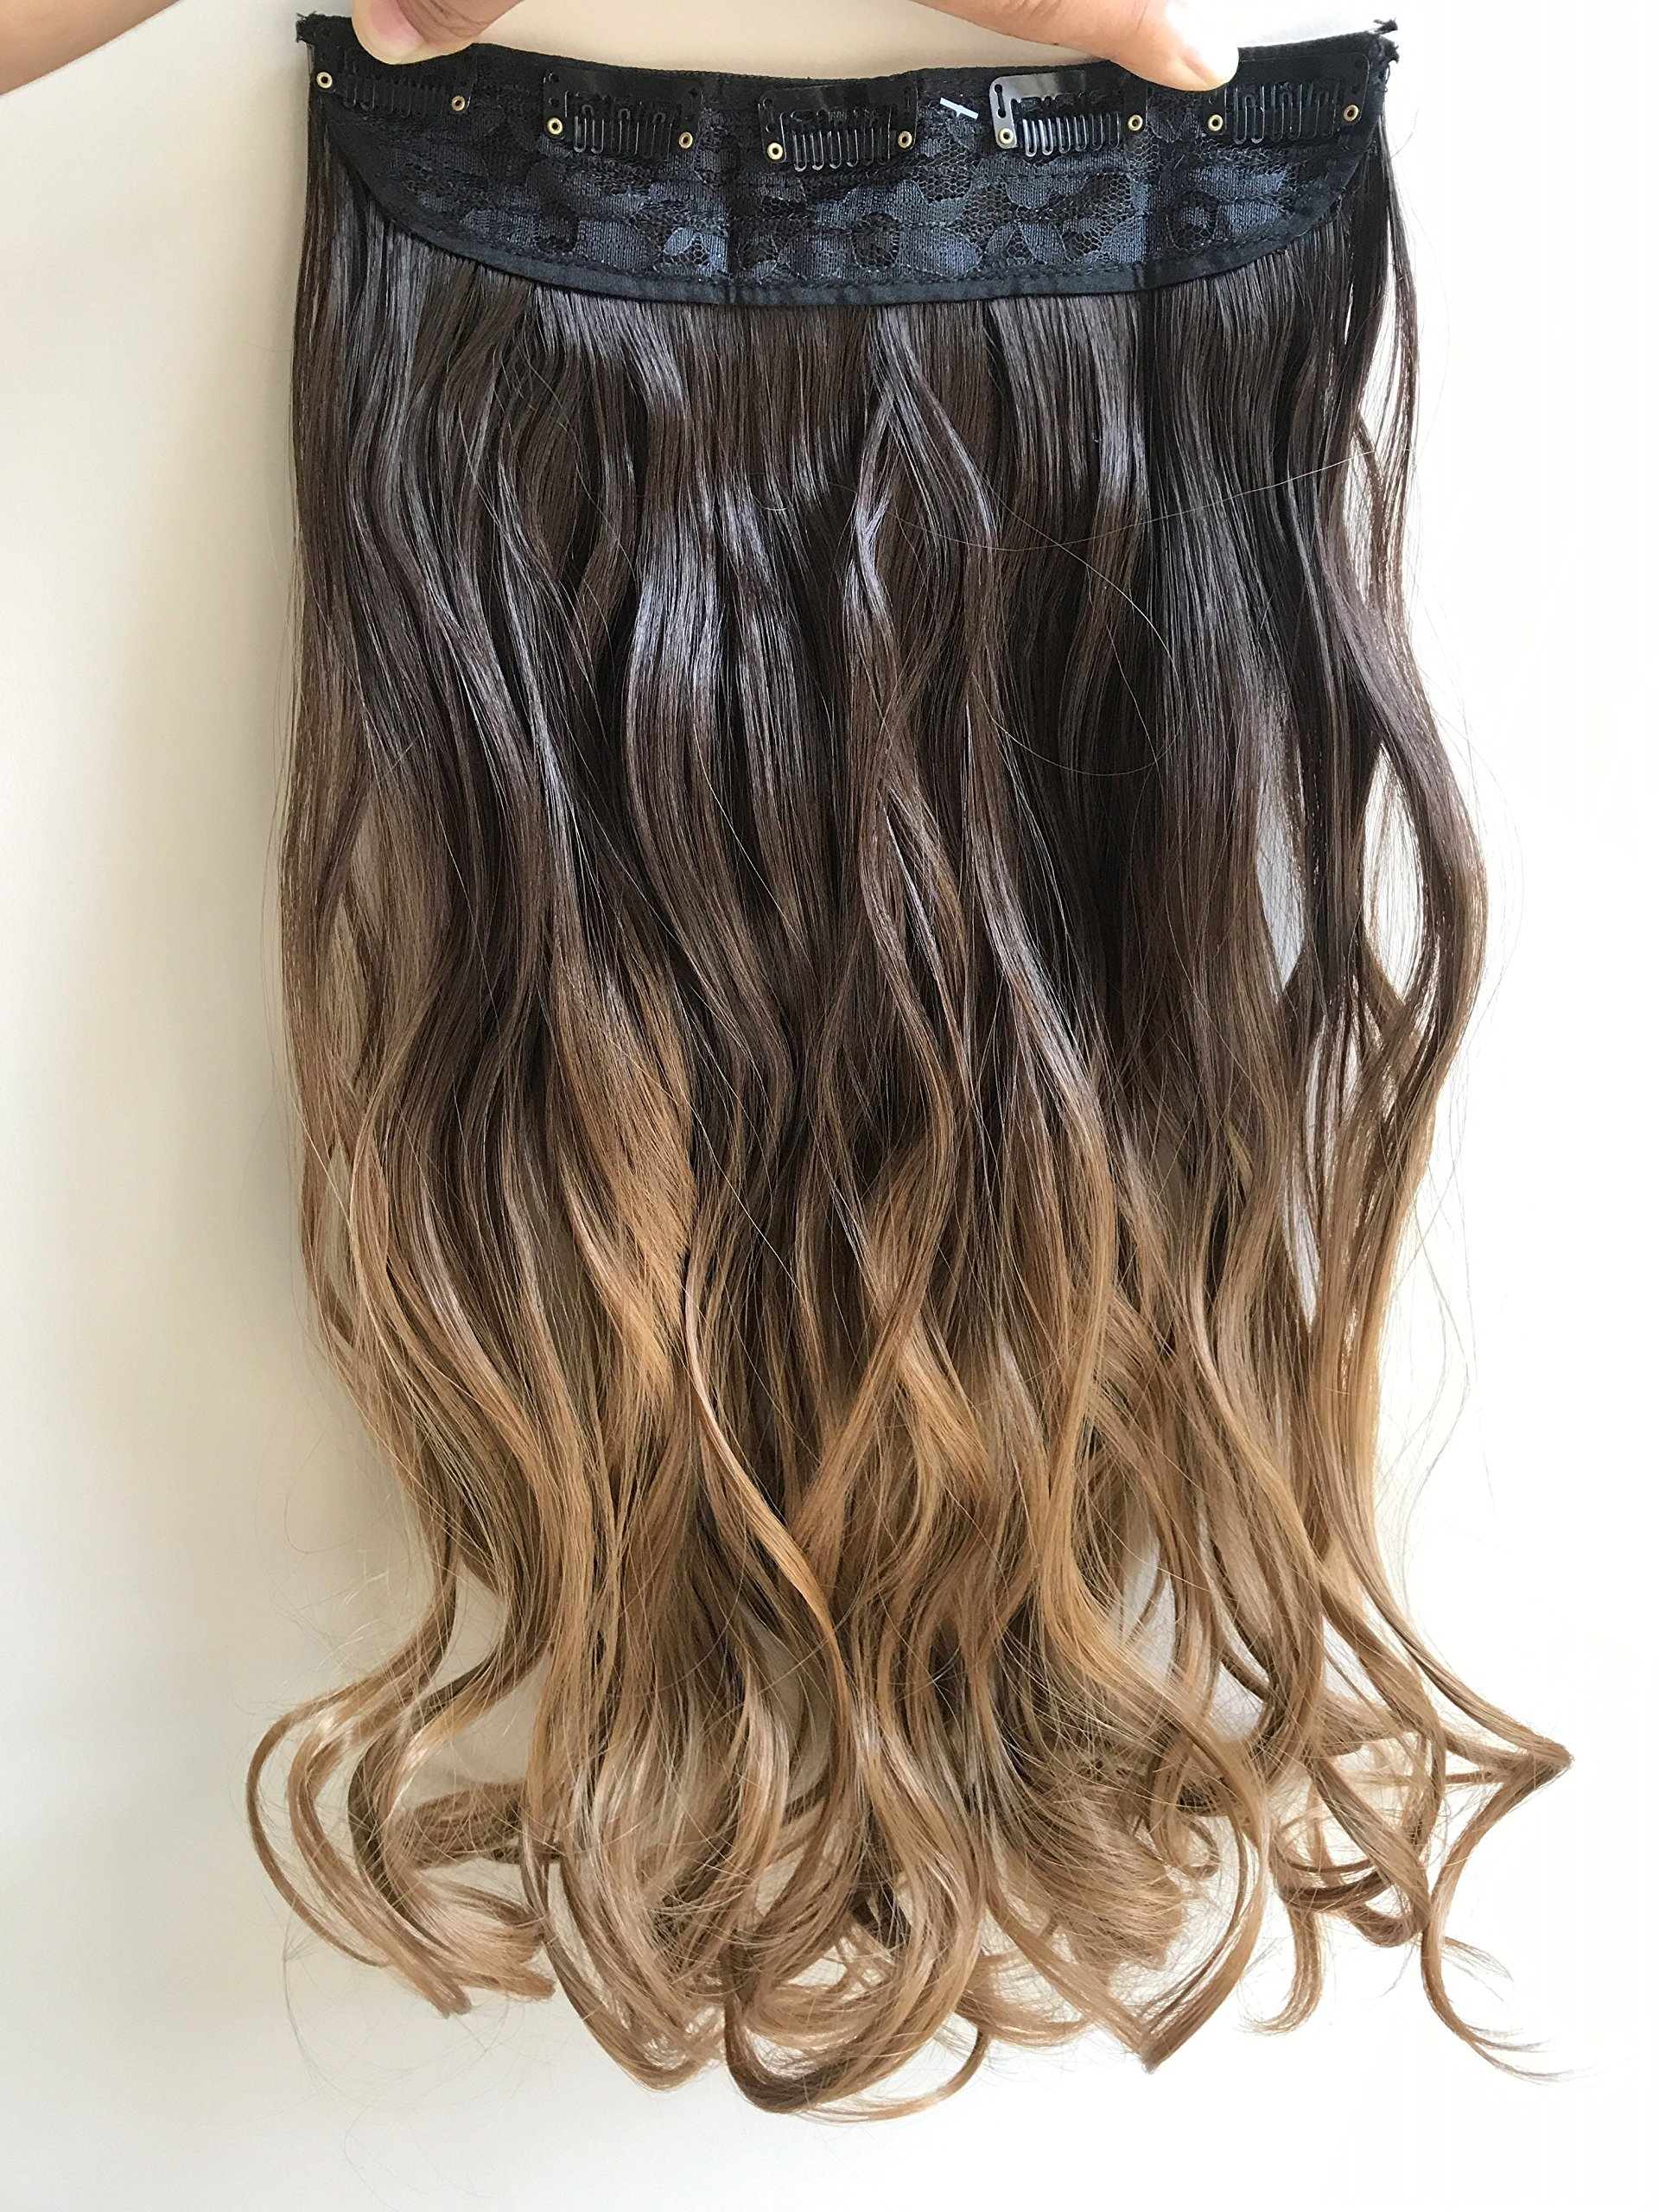 20 Inches 3/4 Full Head Clip in Hair Extensions Ombre One Piece 2 Tones Wavy Curly (dark brown to dark blonde) by DevaLook Hair Extensions (Image #1)